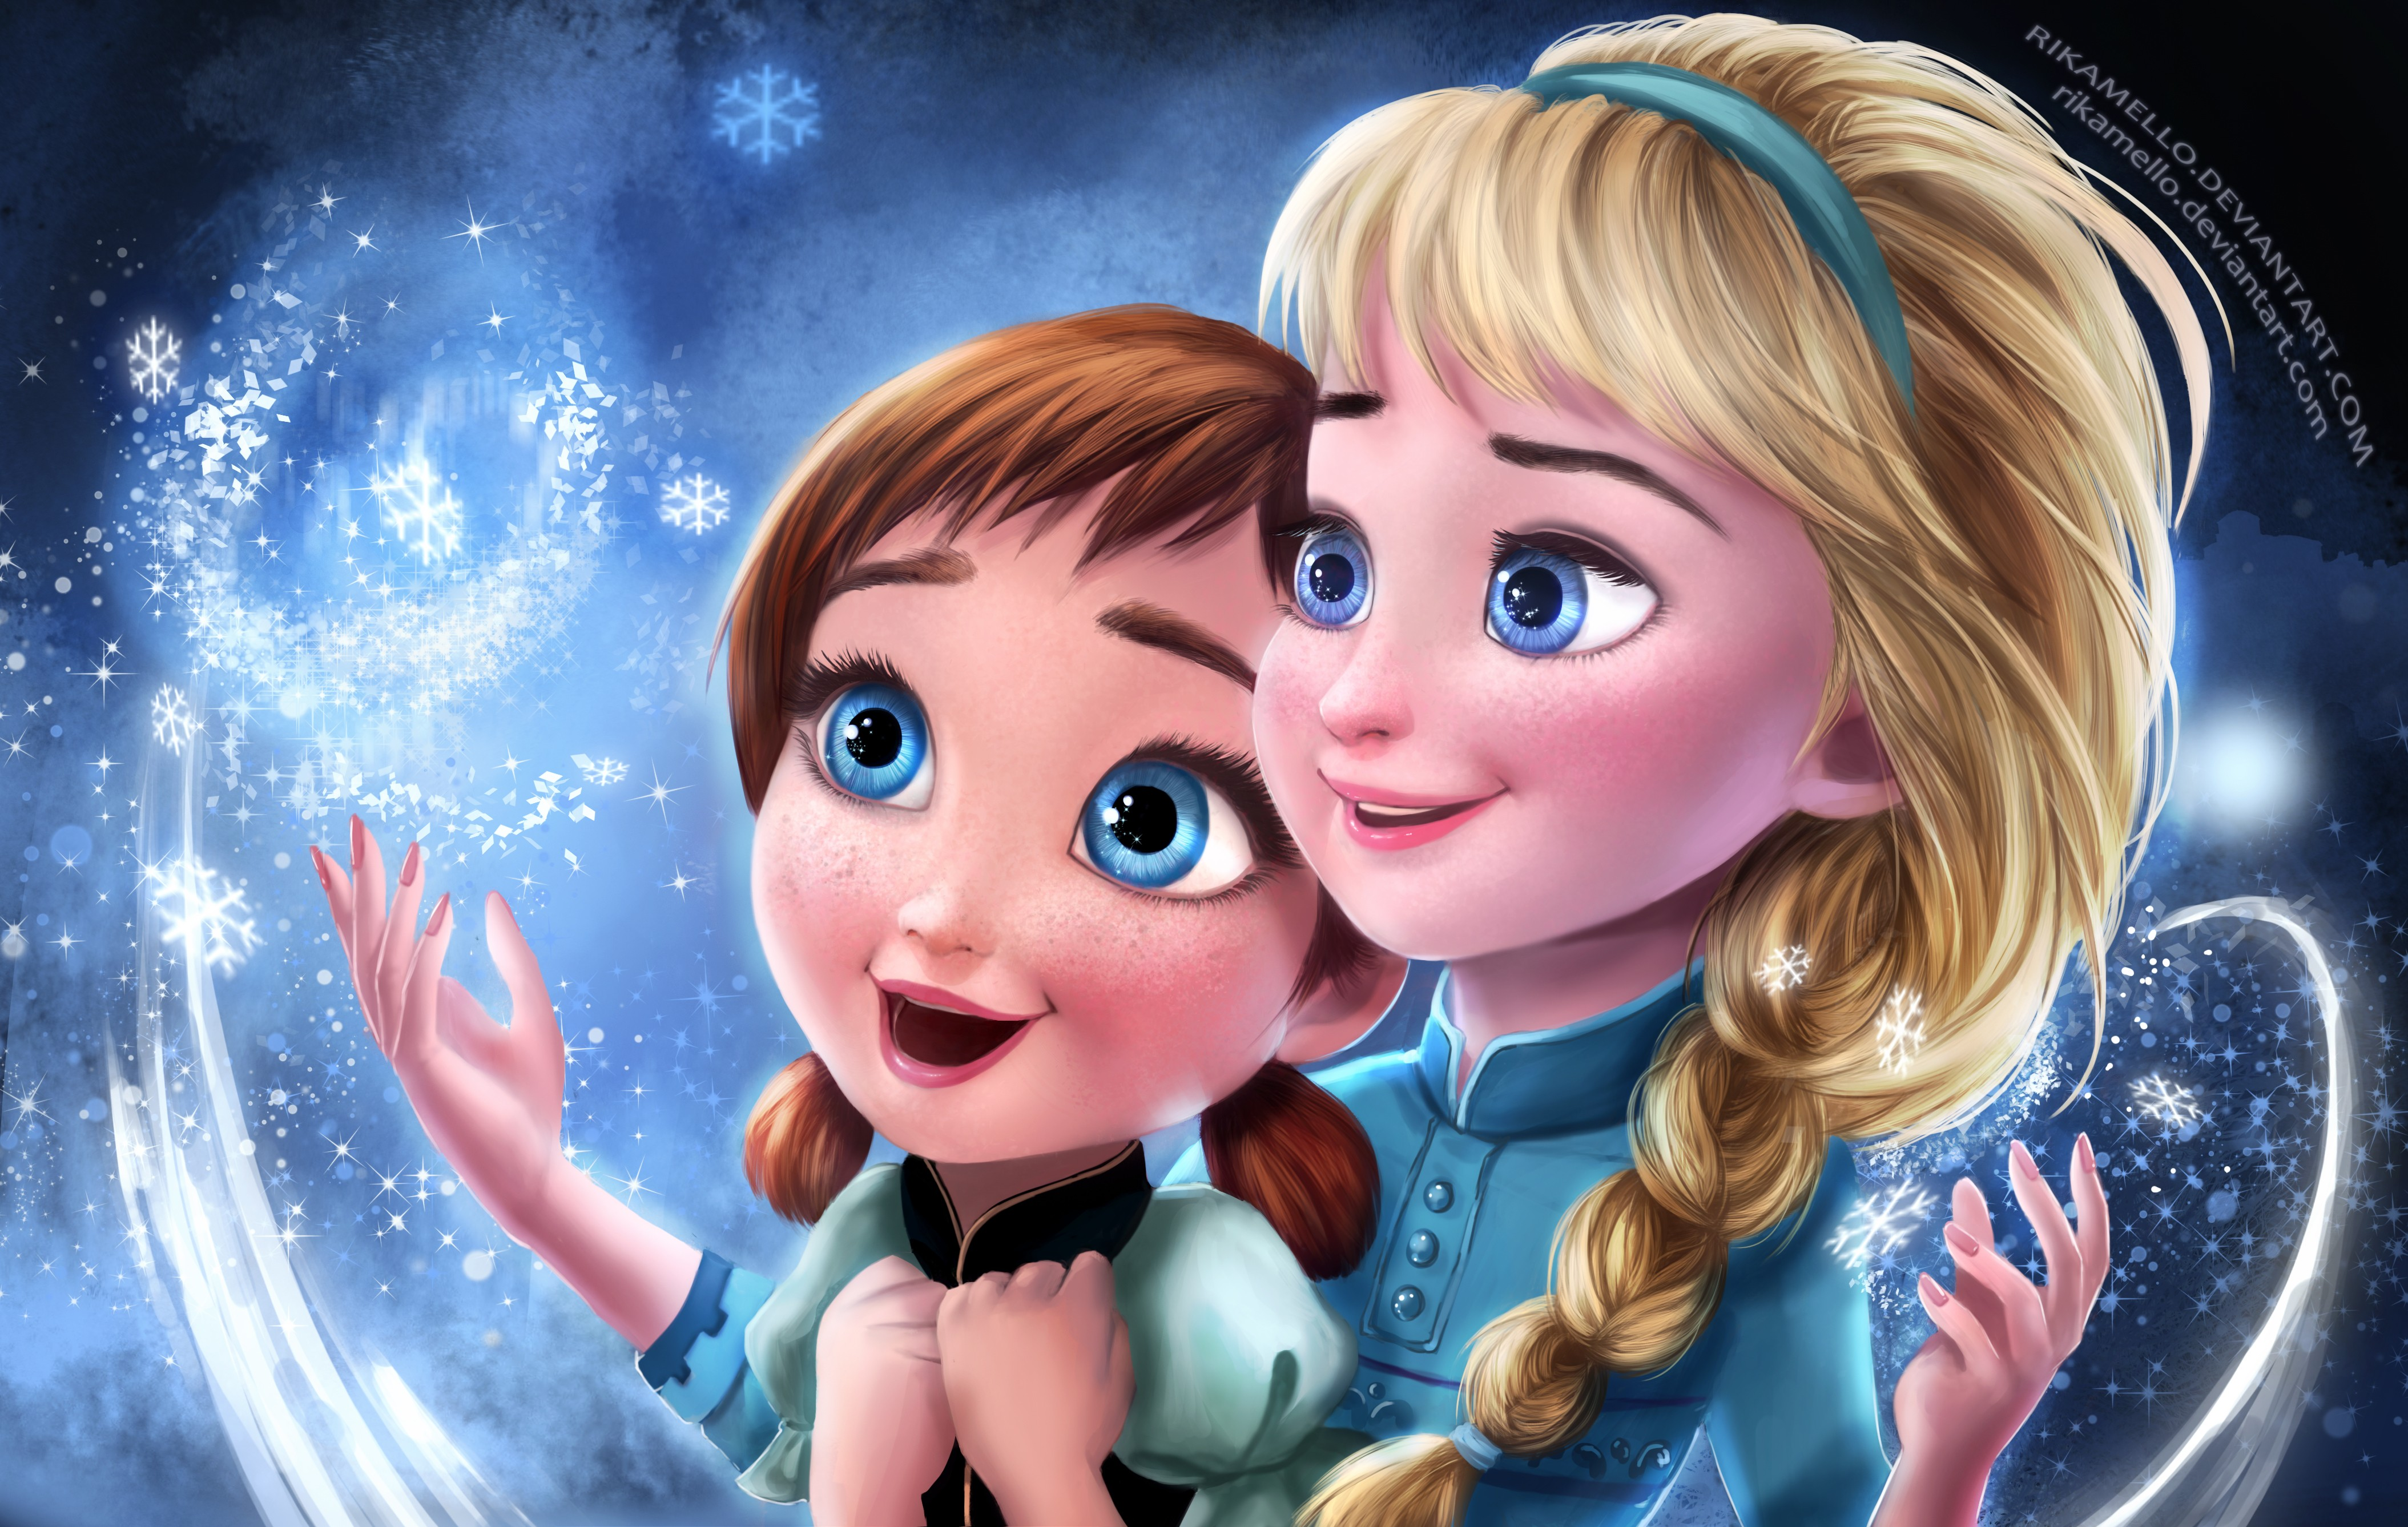 Frozen Wallpaper ① Download Free Beautiful Full Hd Wallpapers For